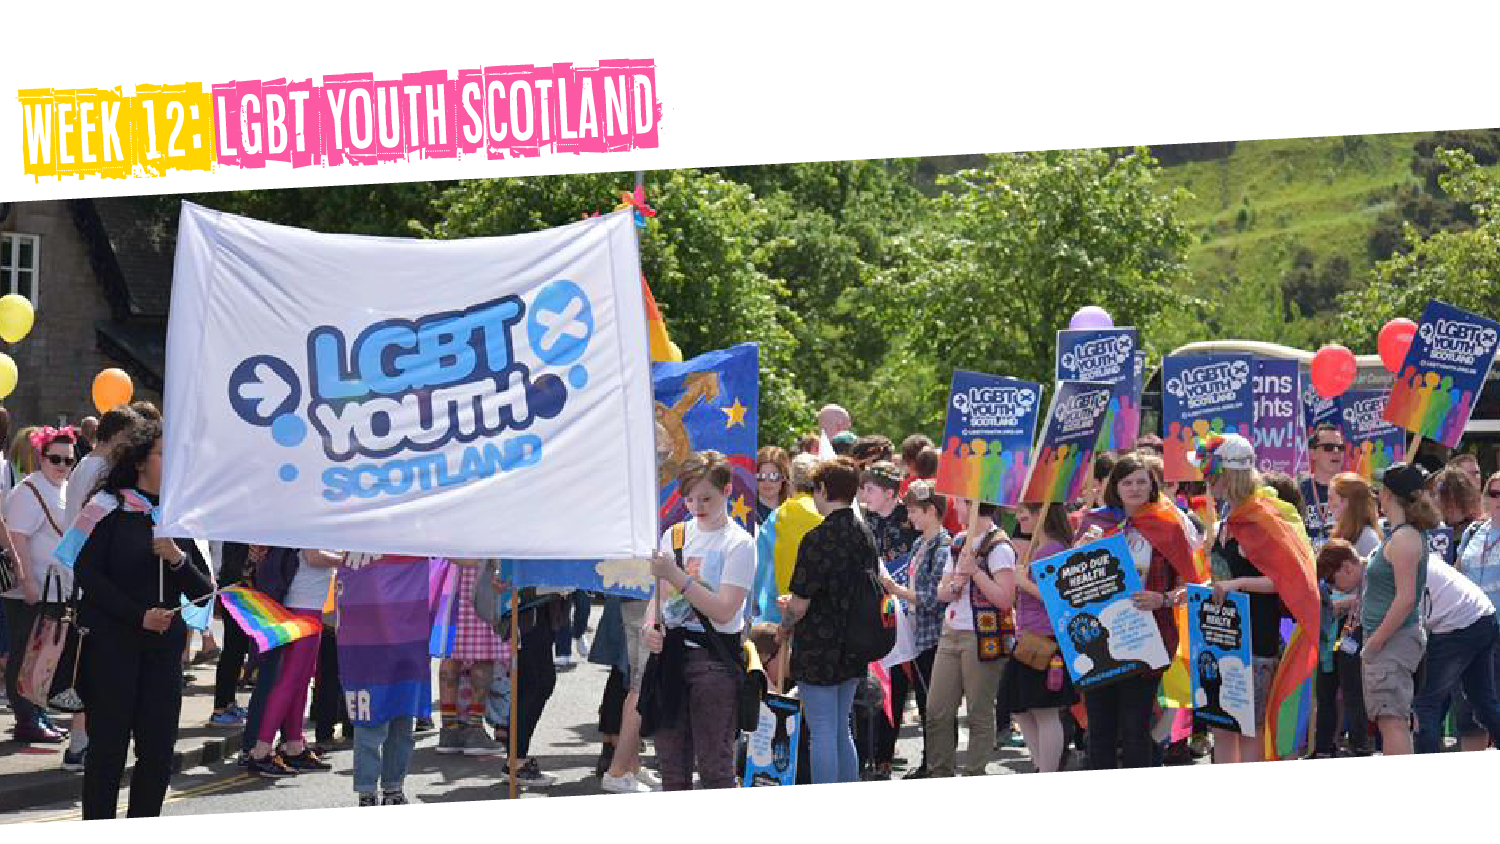 IYM Week 12: LGBT Youth Scotland